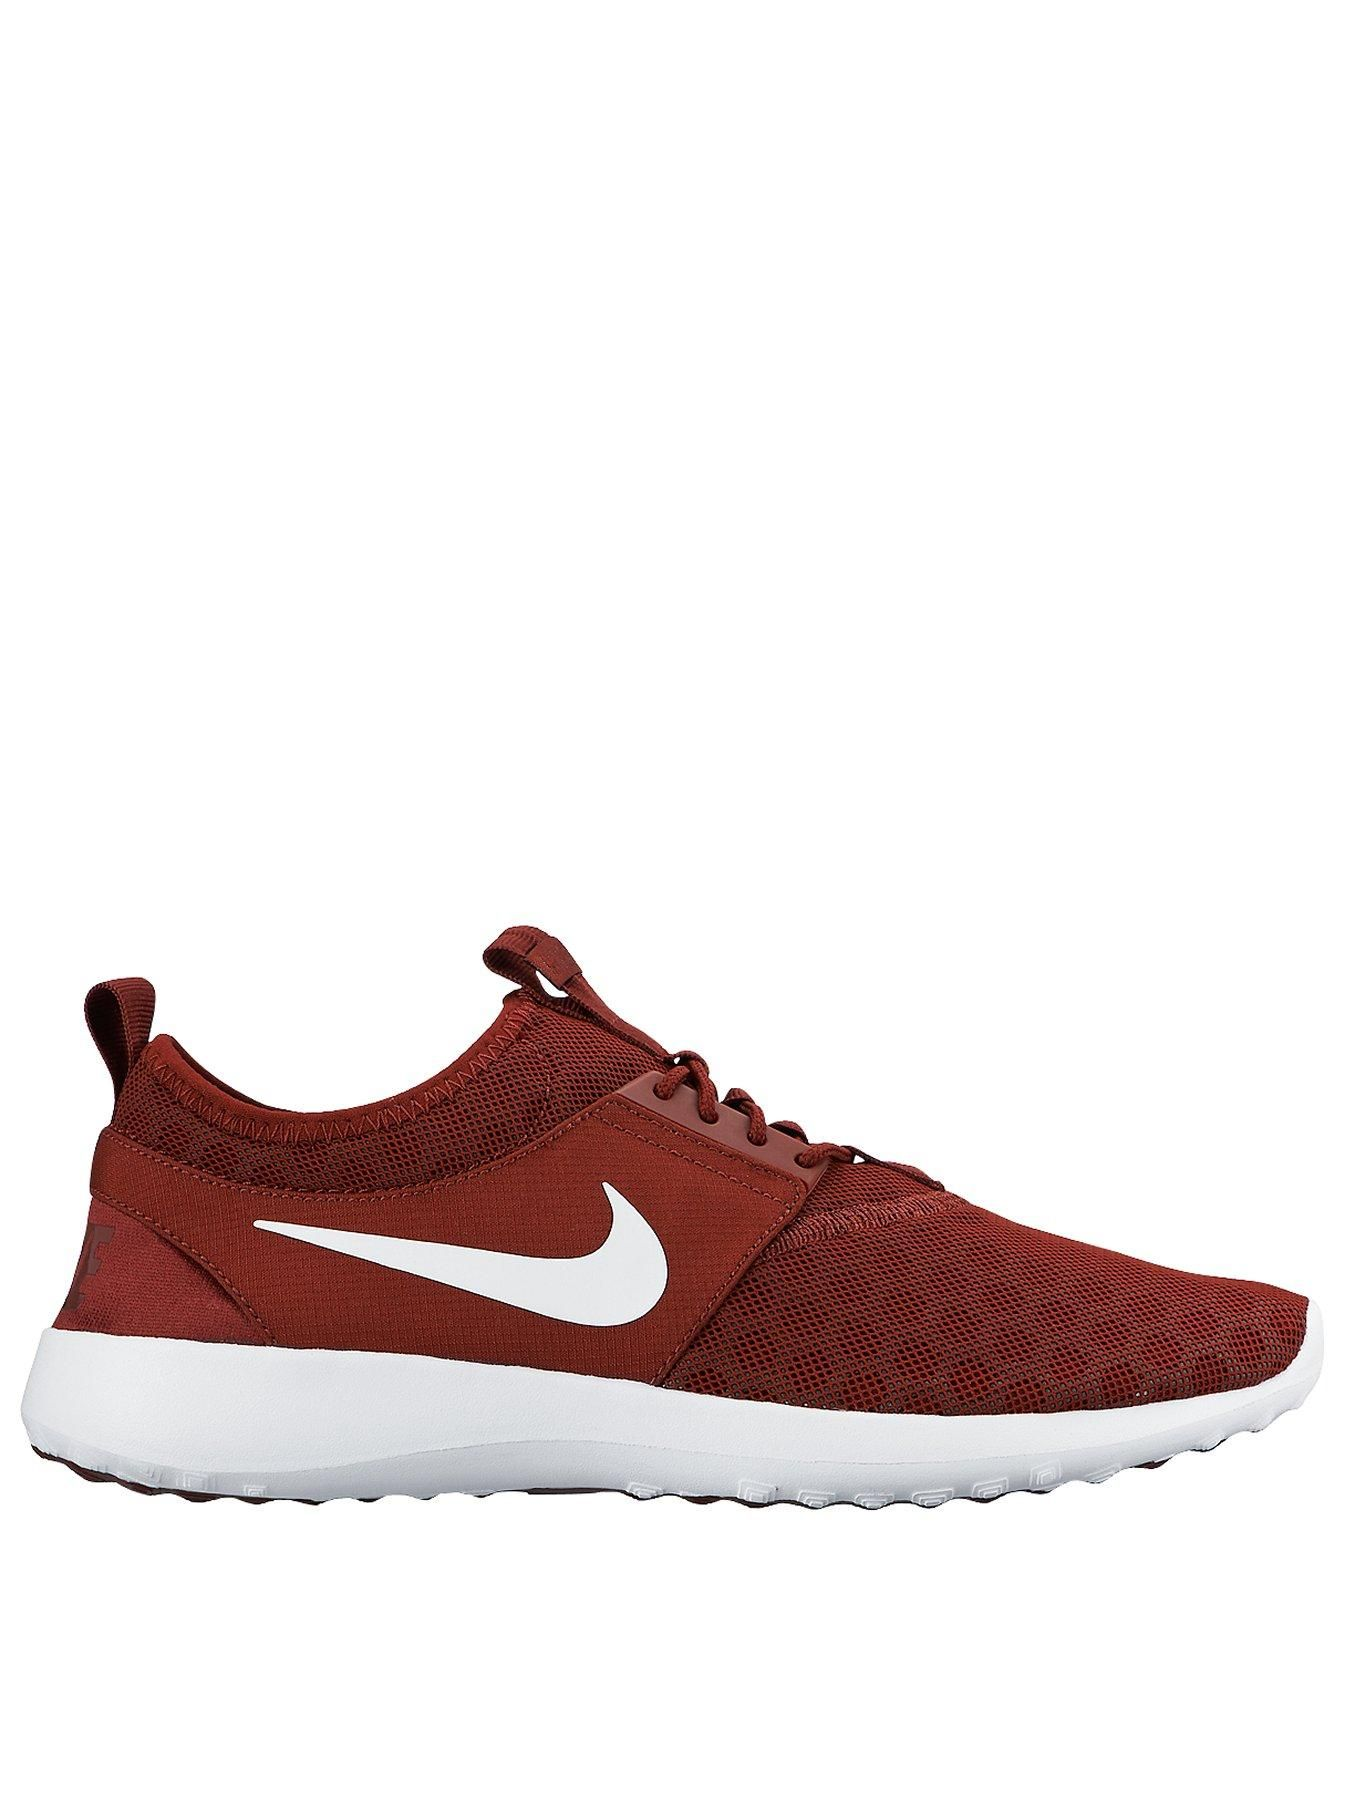 2a03c31622e Nike Juvenate Trainers - Red White